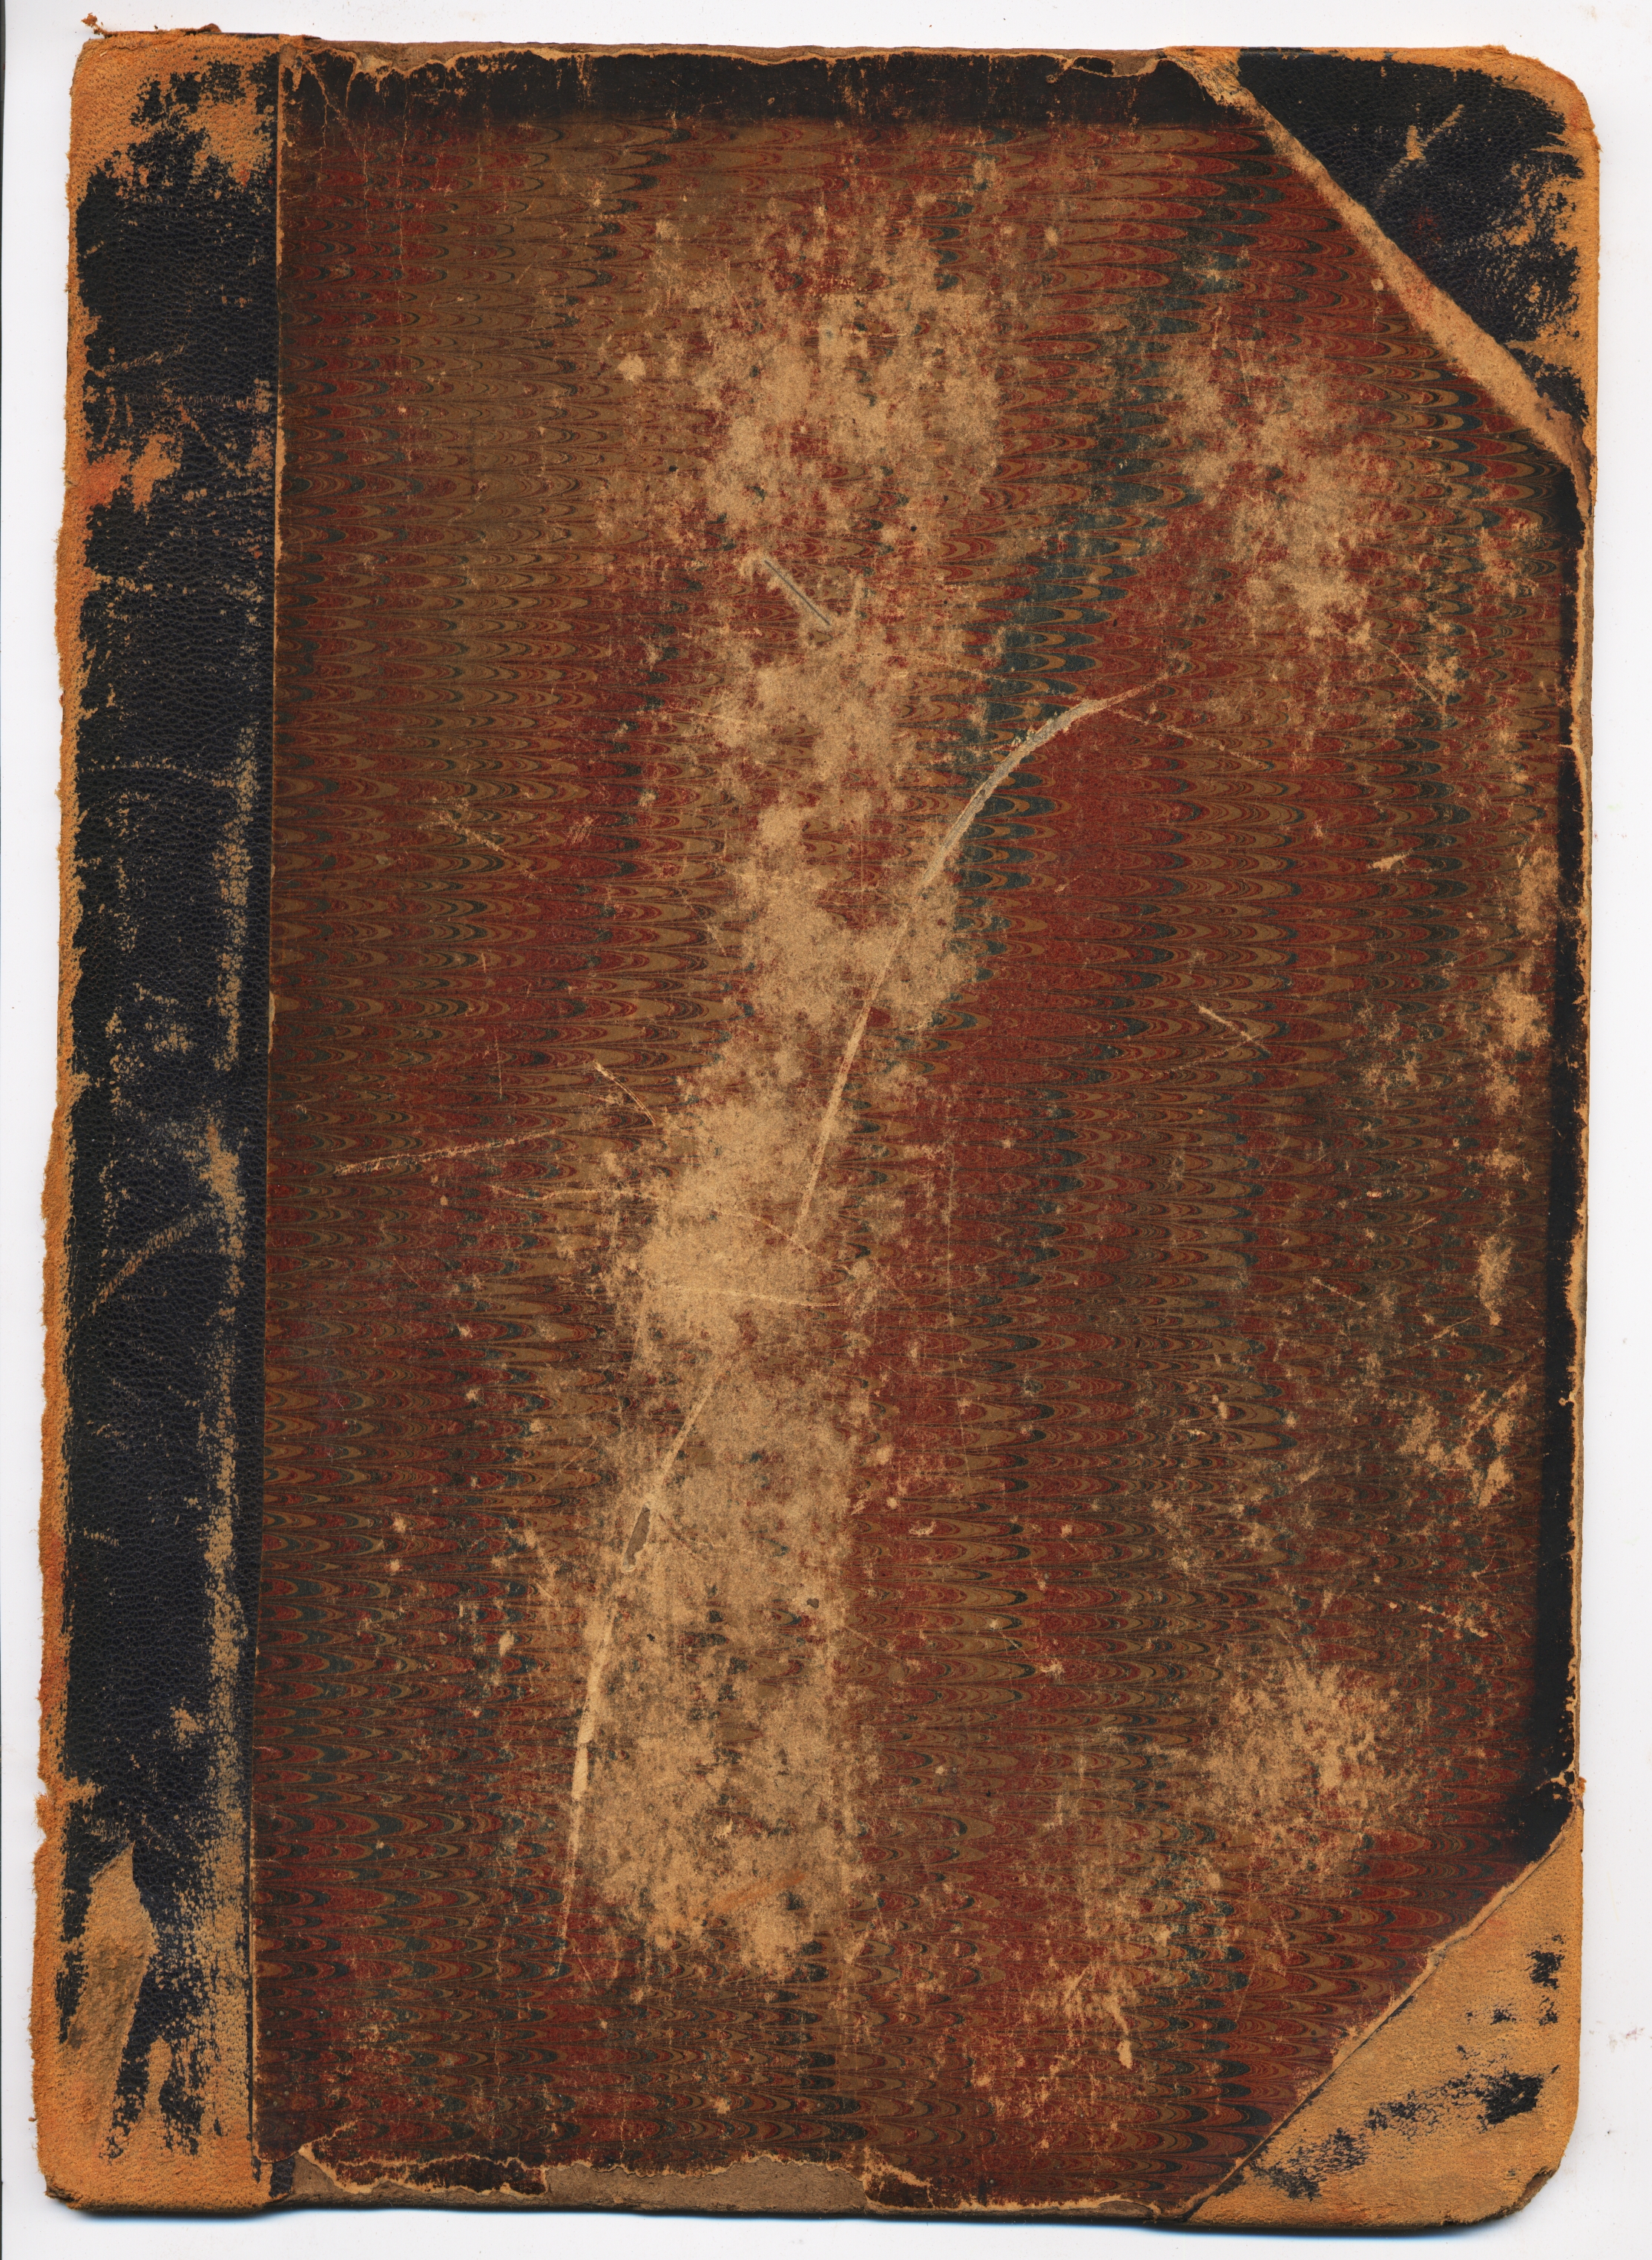 Old Book Cover Image : Free black bumpy old book cover texture l t